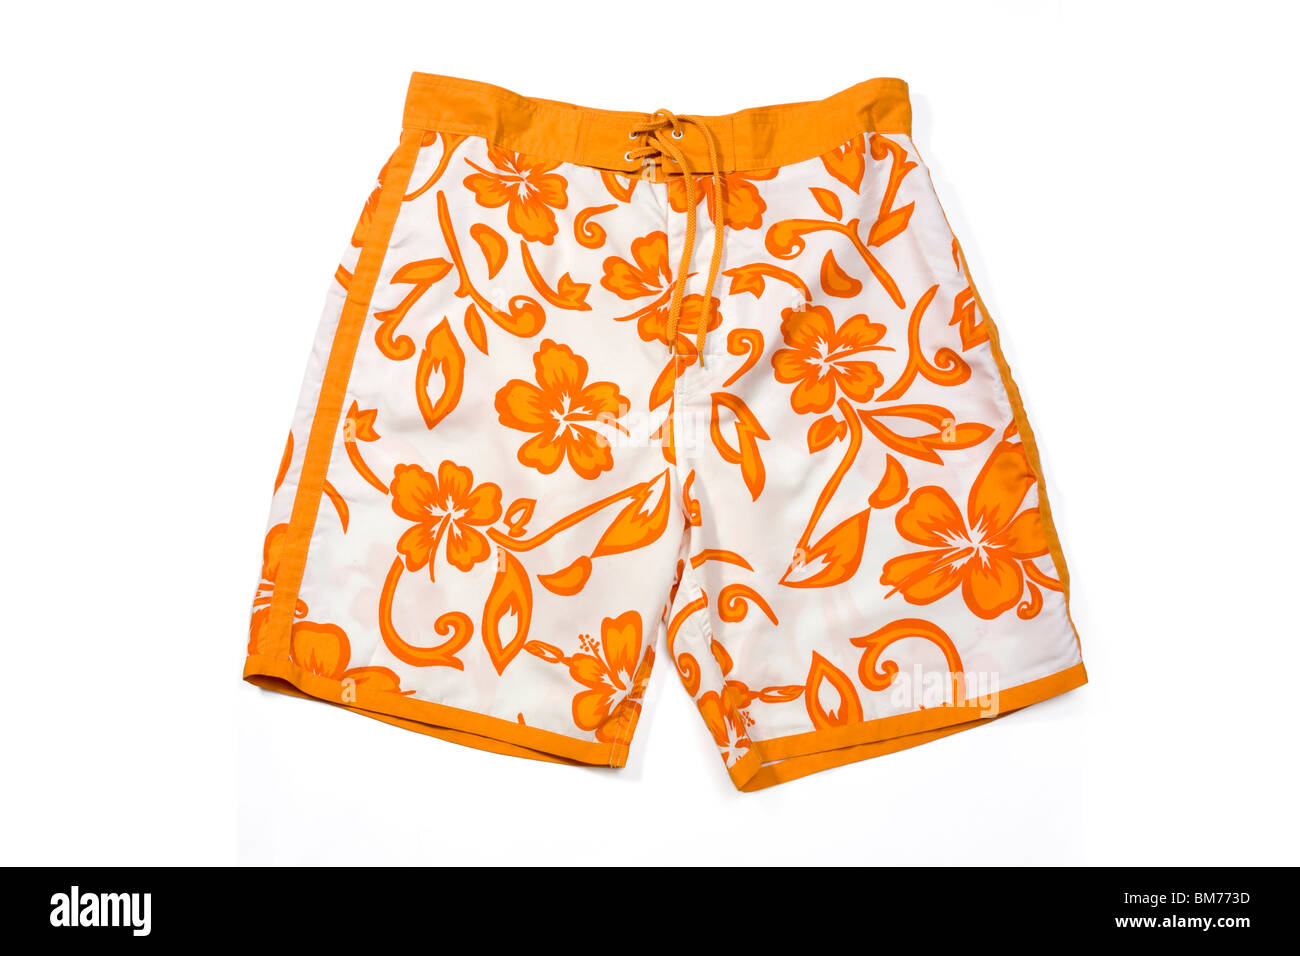 Orange floral pattern swimming trunks isolated on white. - Stock Image